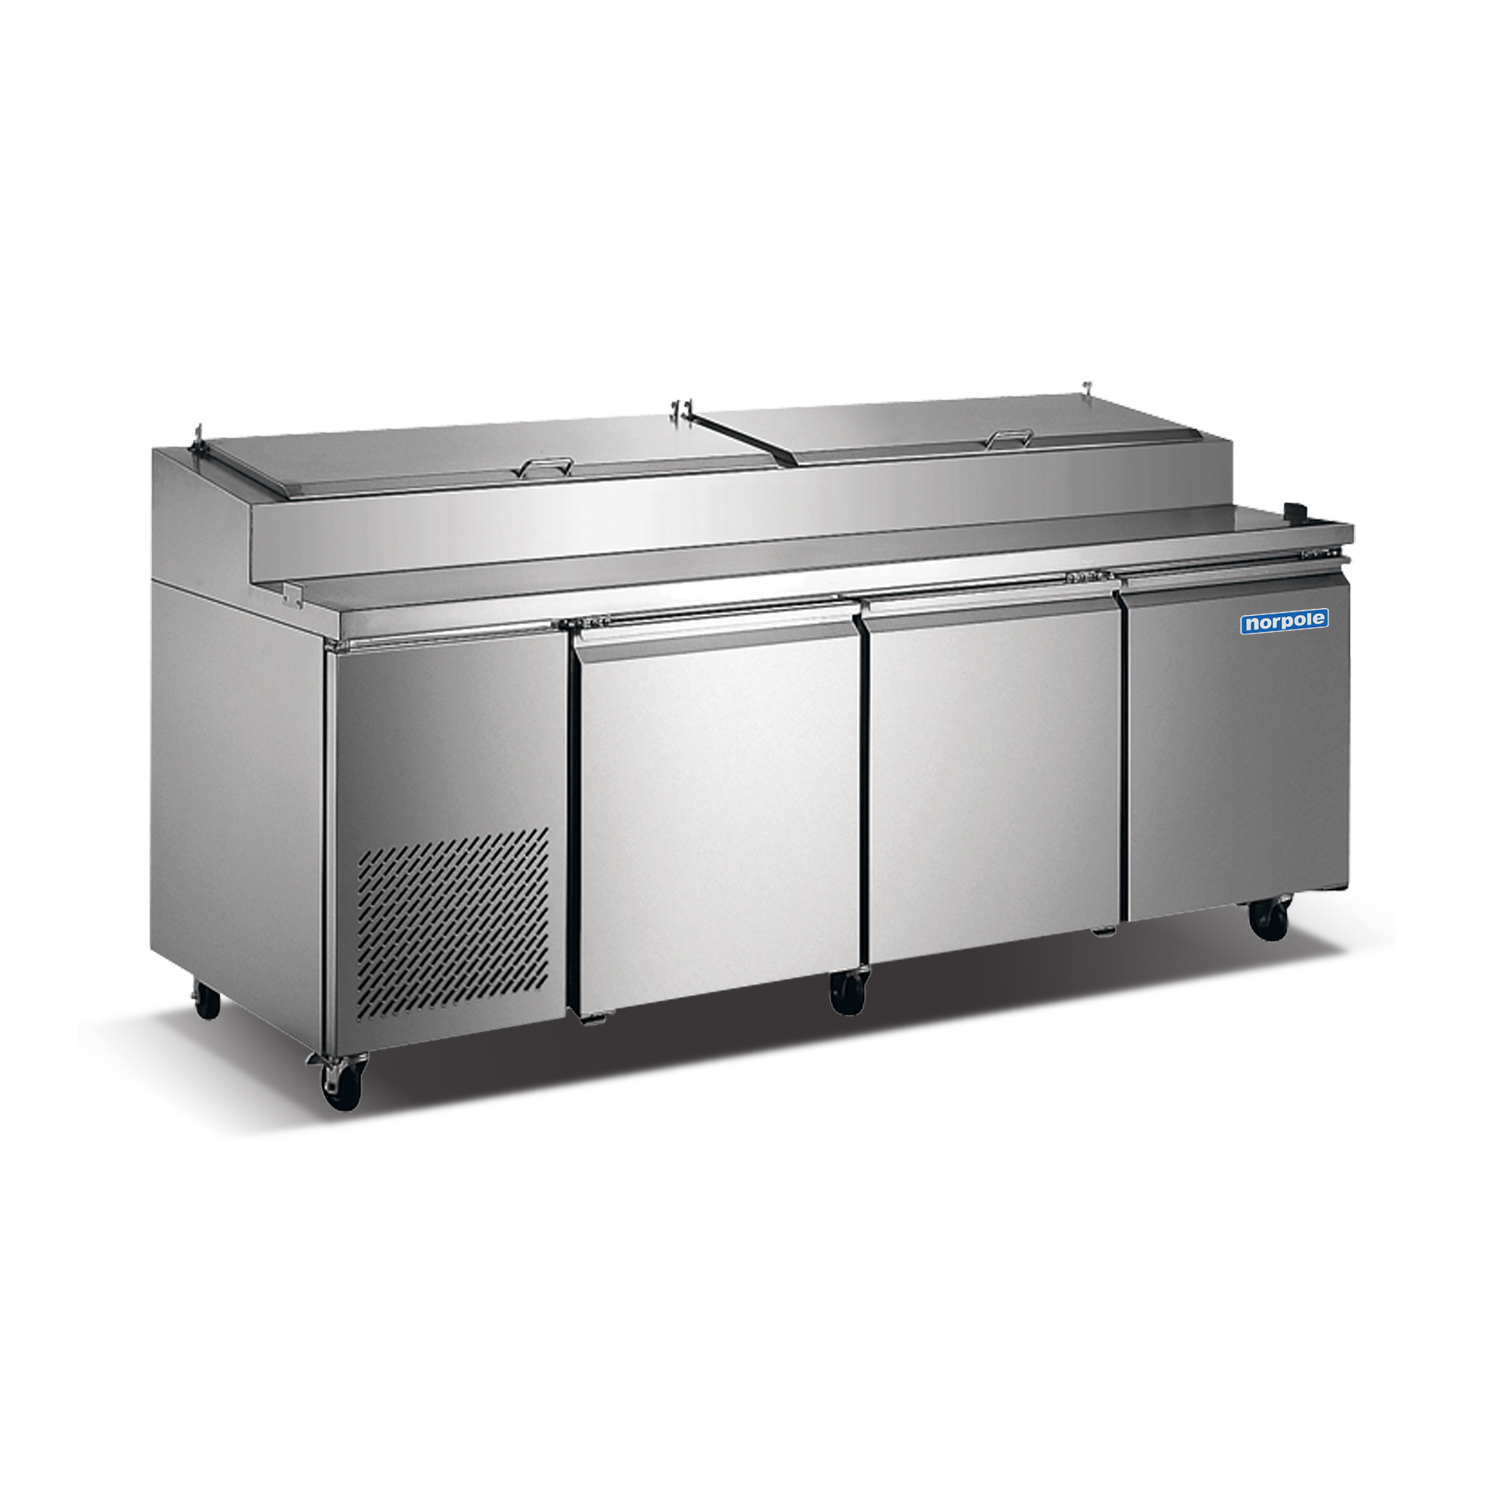 Norpole Np3r Pt 3 Door Pizza Prep Table Quality